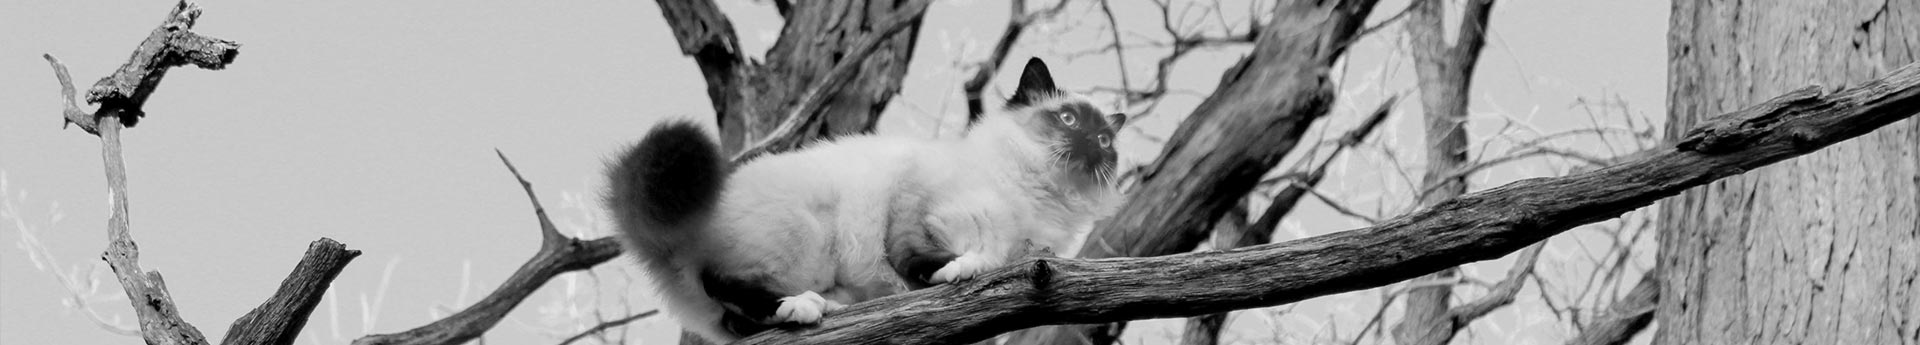 Siamese cat in a tree - Adventurous Finch from Grayslake, Illinois